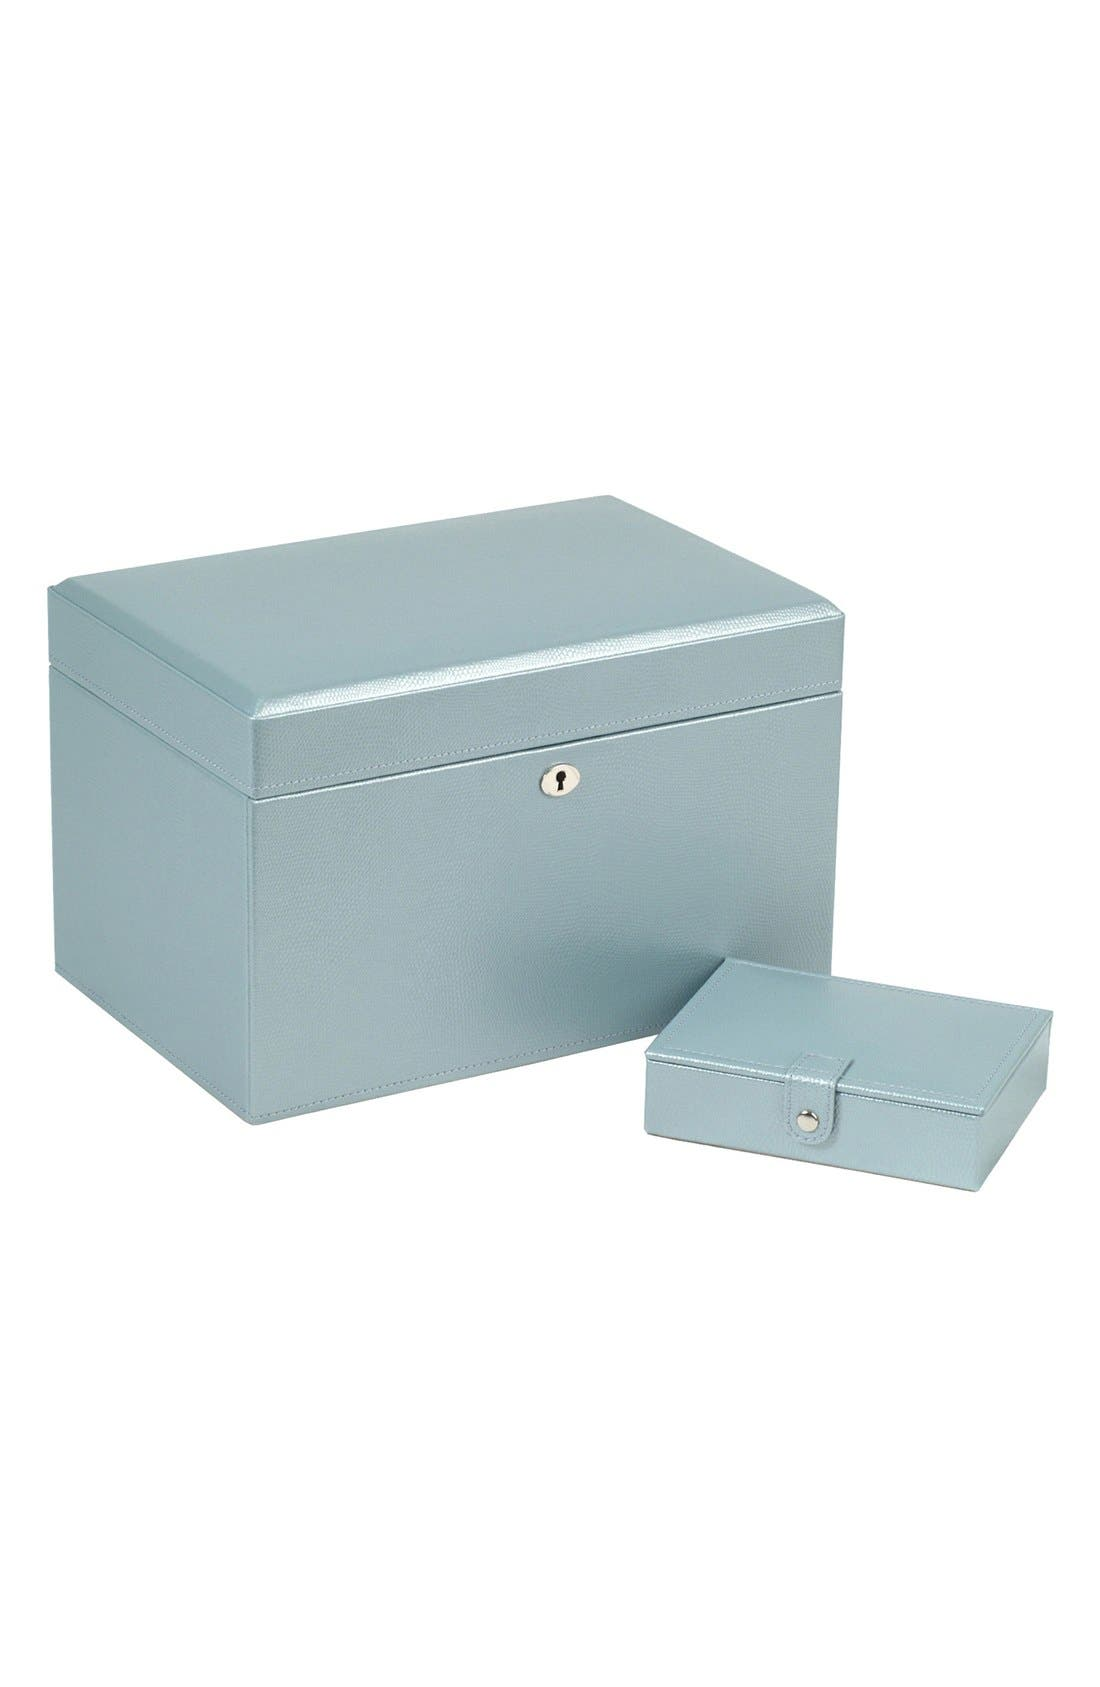 London Medium Jewelry Box,                             Main thumbnail 1, color,                             ICE BLUE